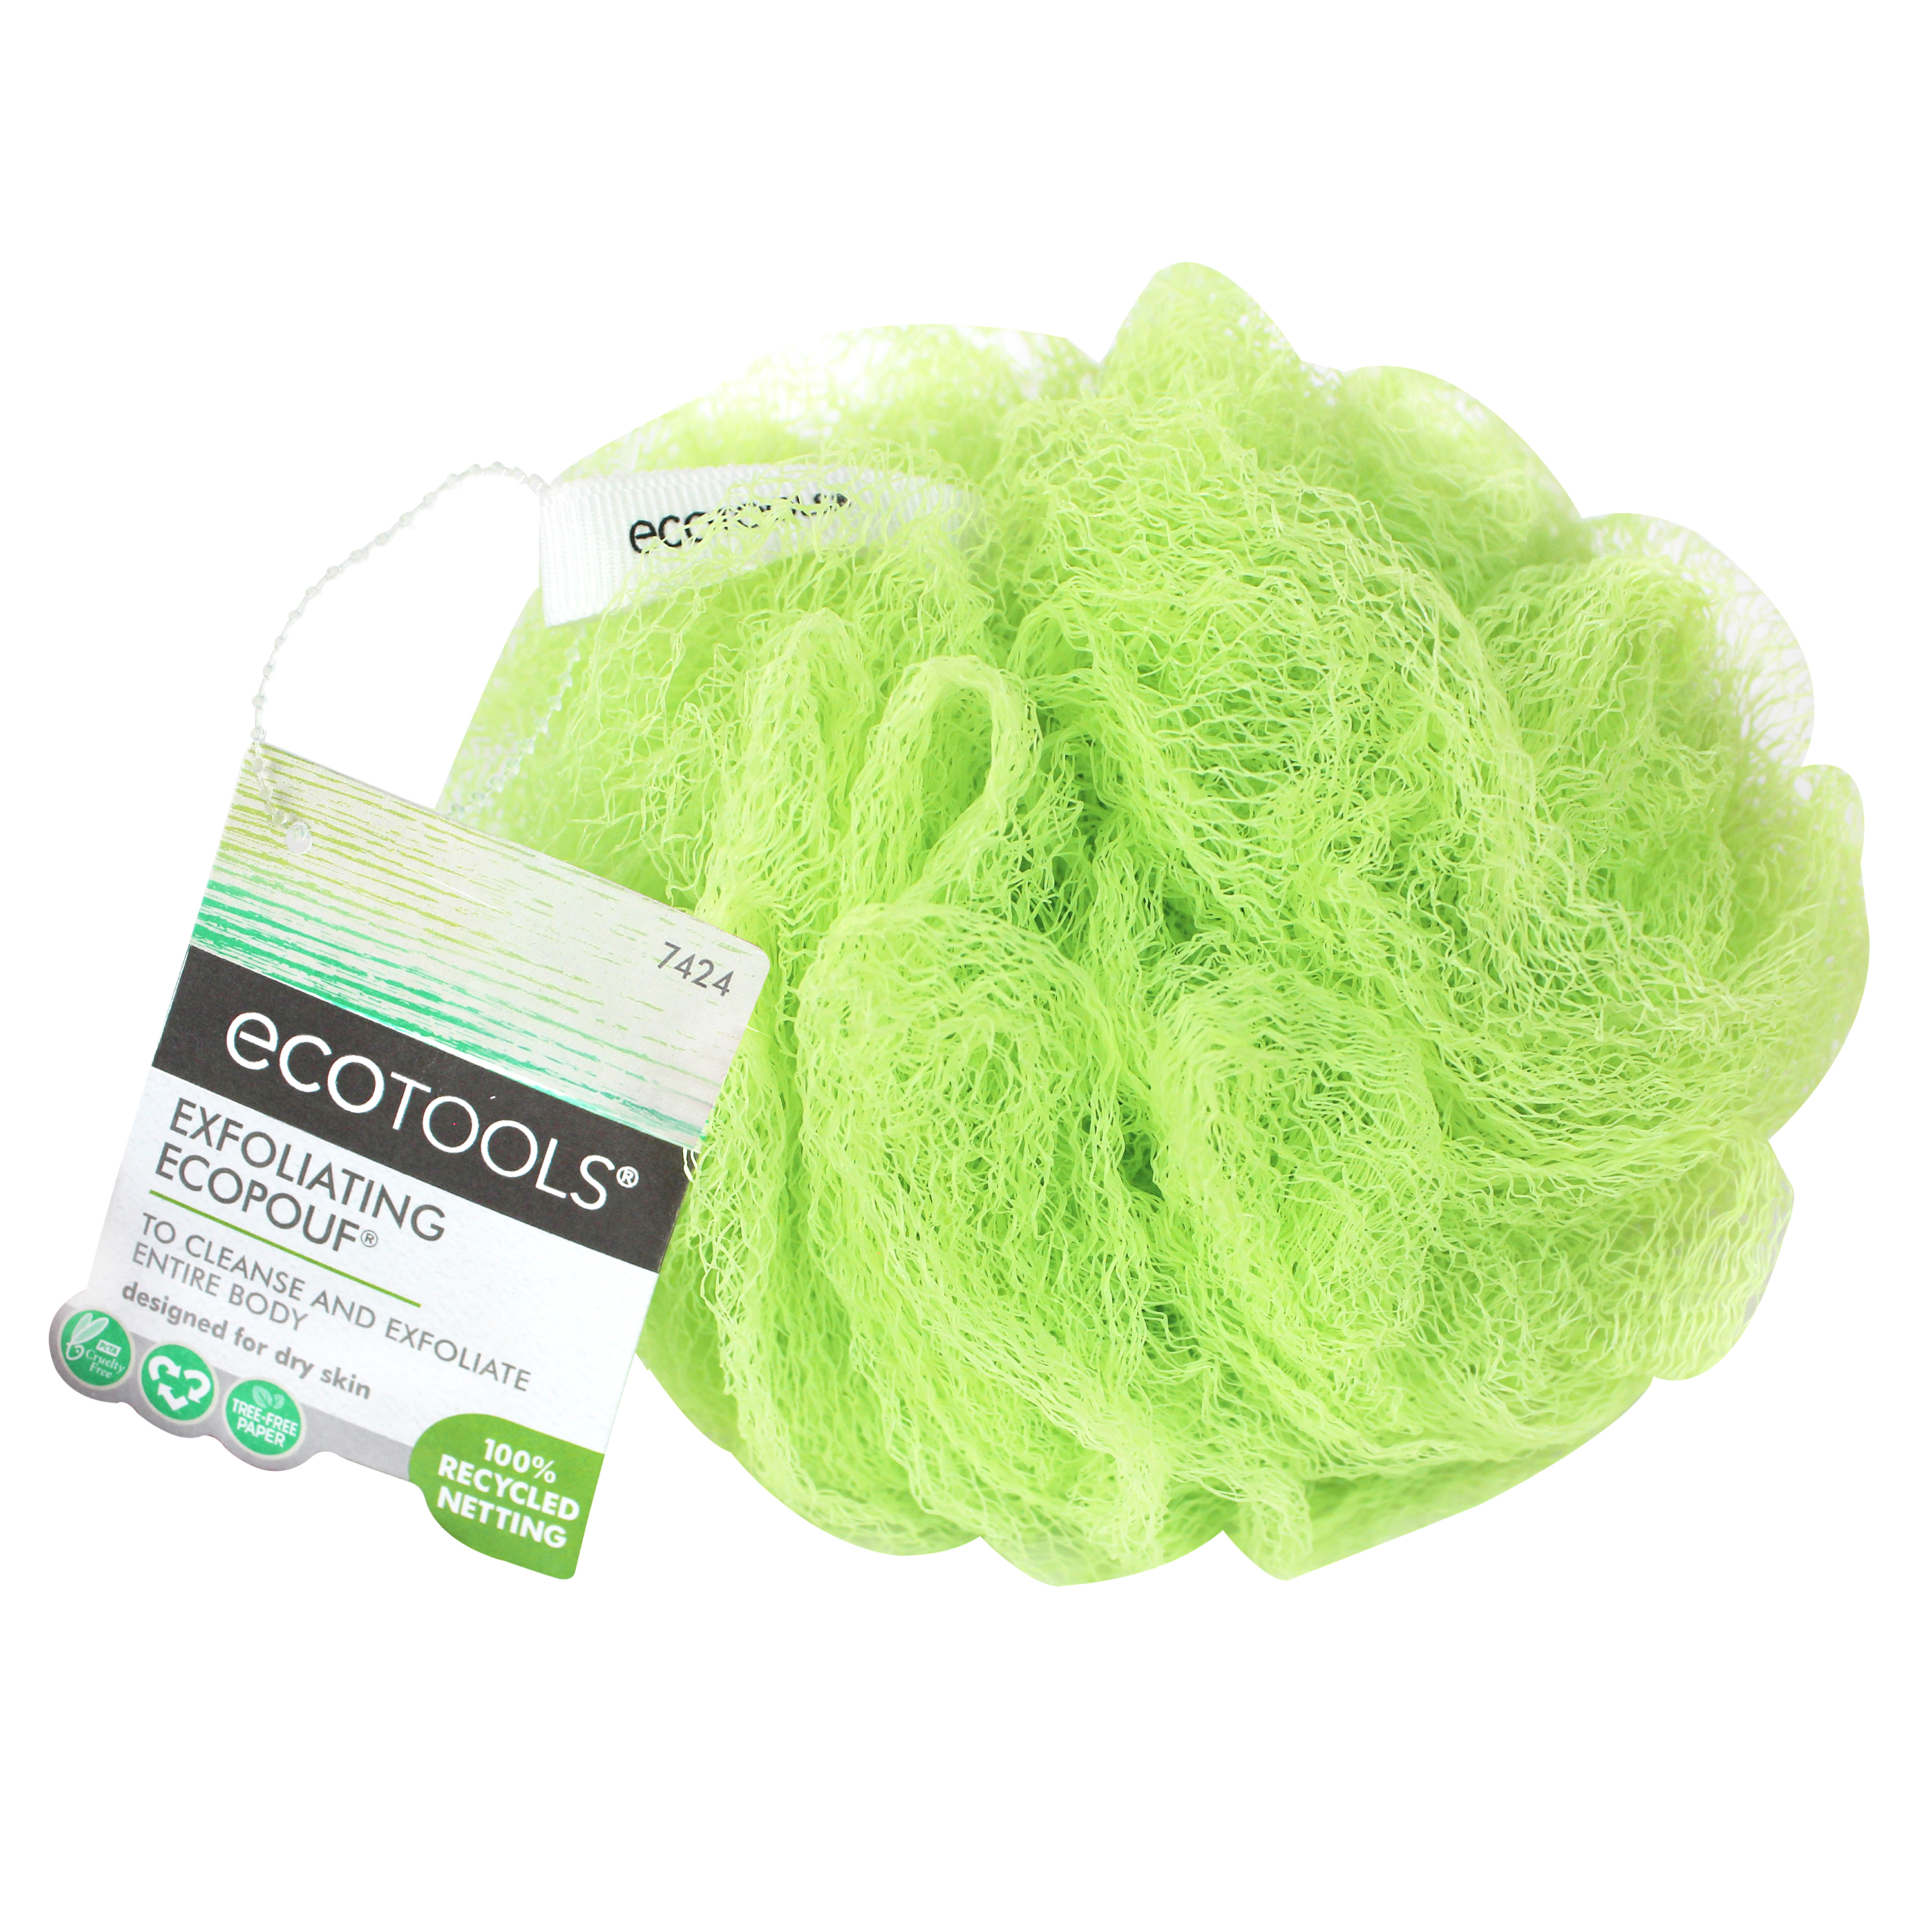 EcoTools Exfoliating Bath Sponge, (color may vary)